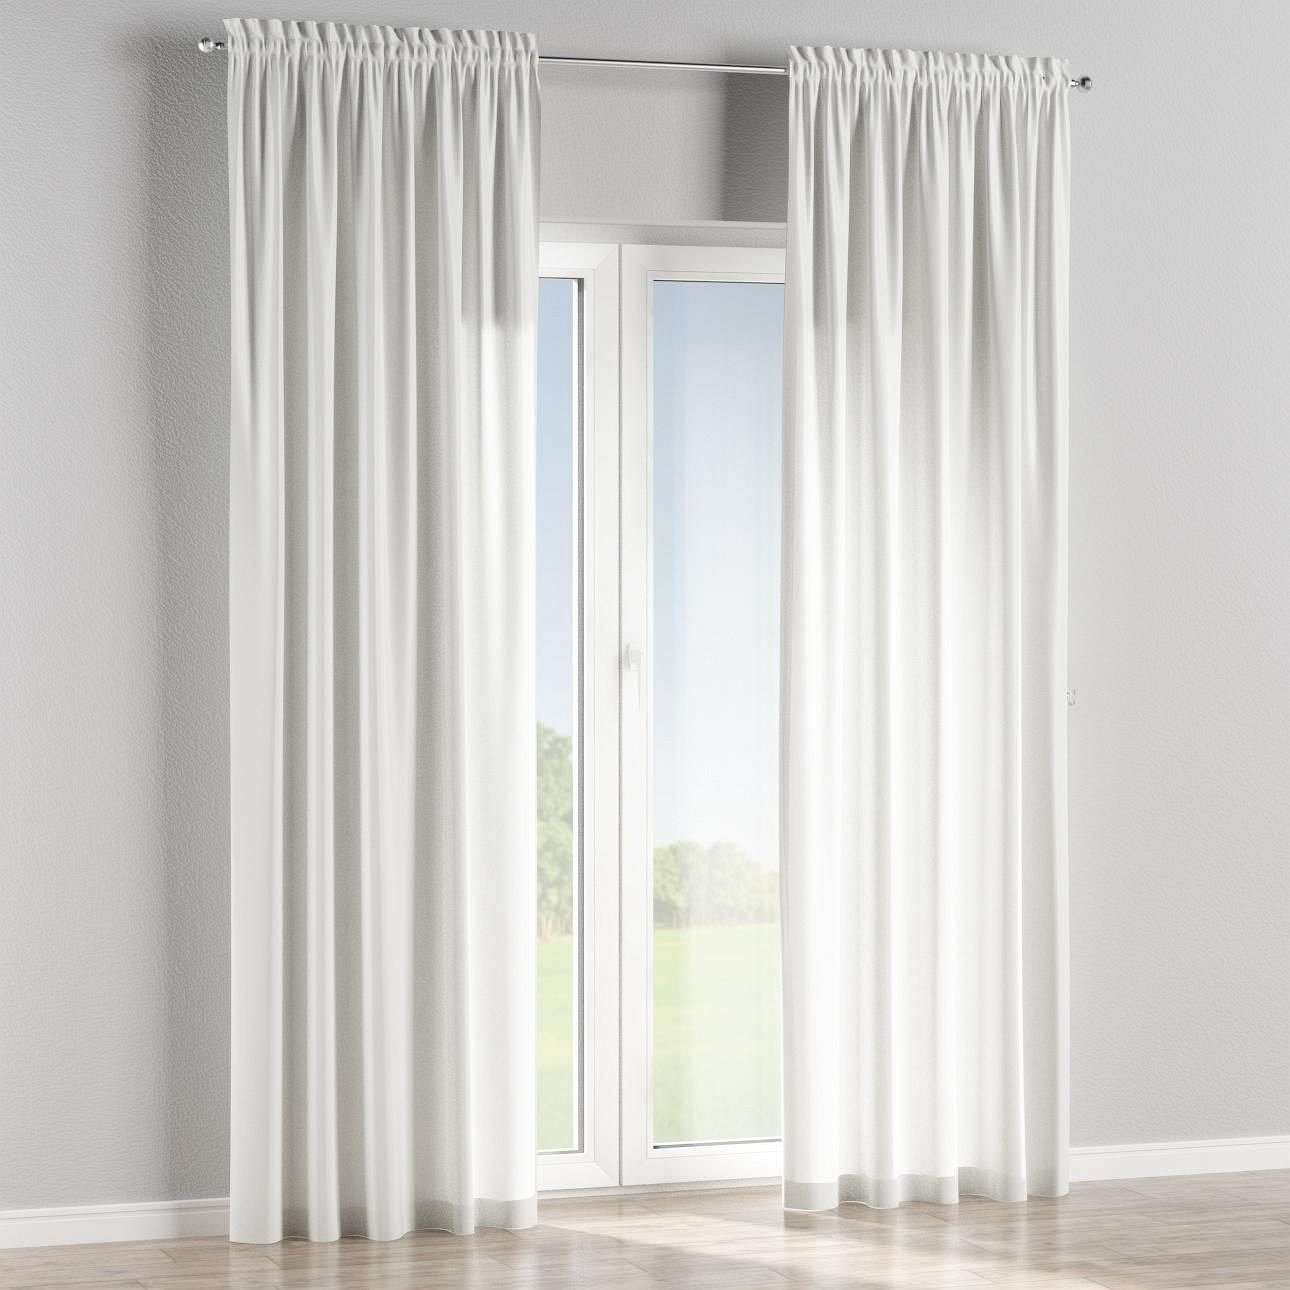 Slot and frill lined curtains in collection Mirella, fabric: 141-13